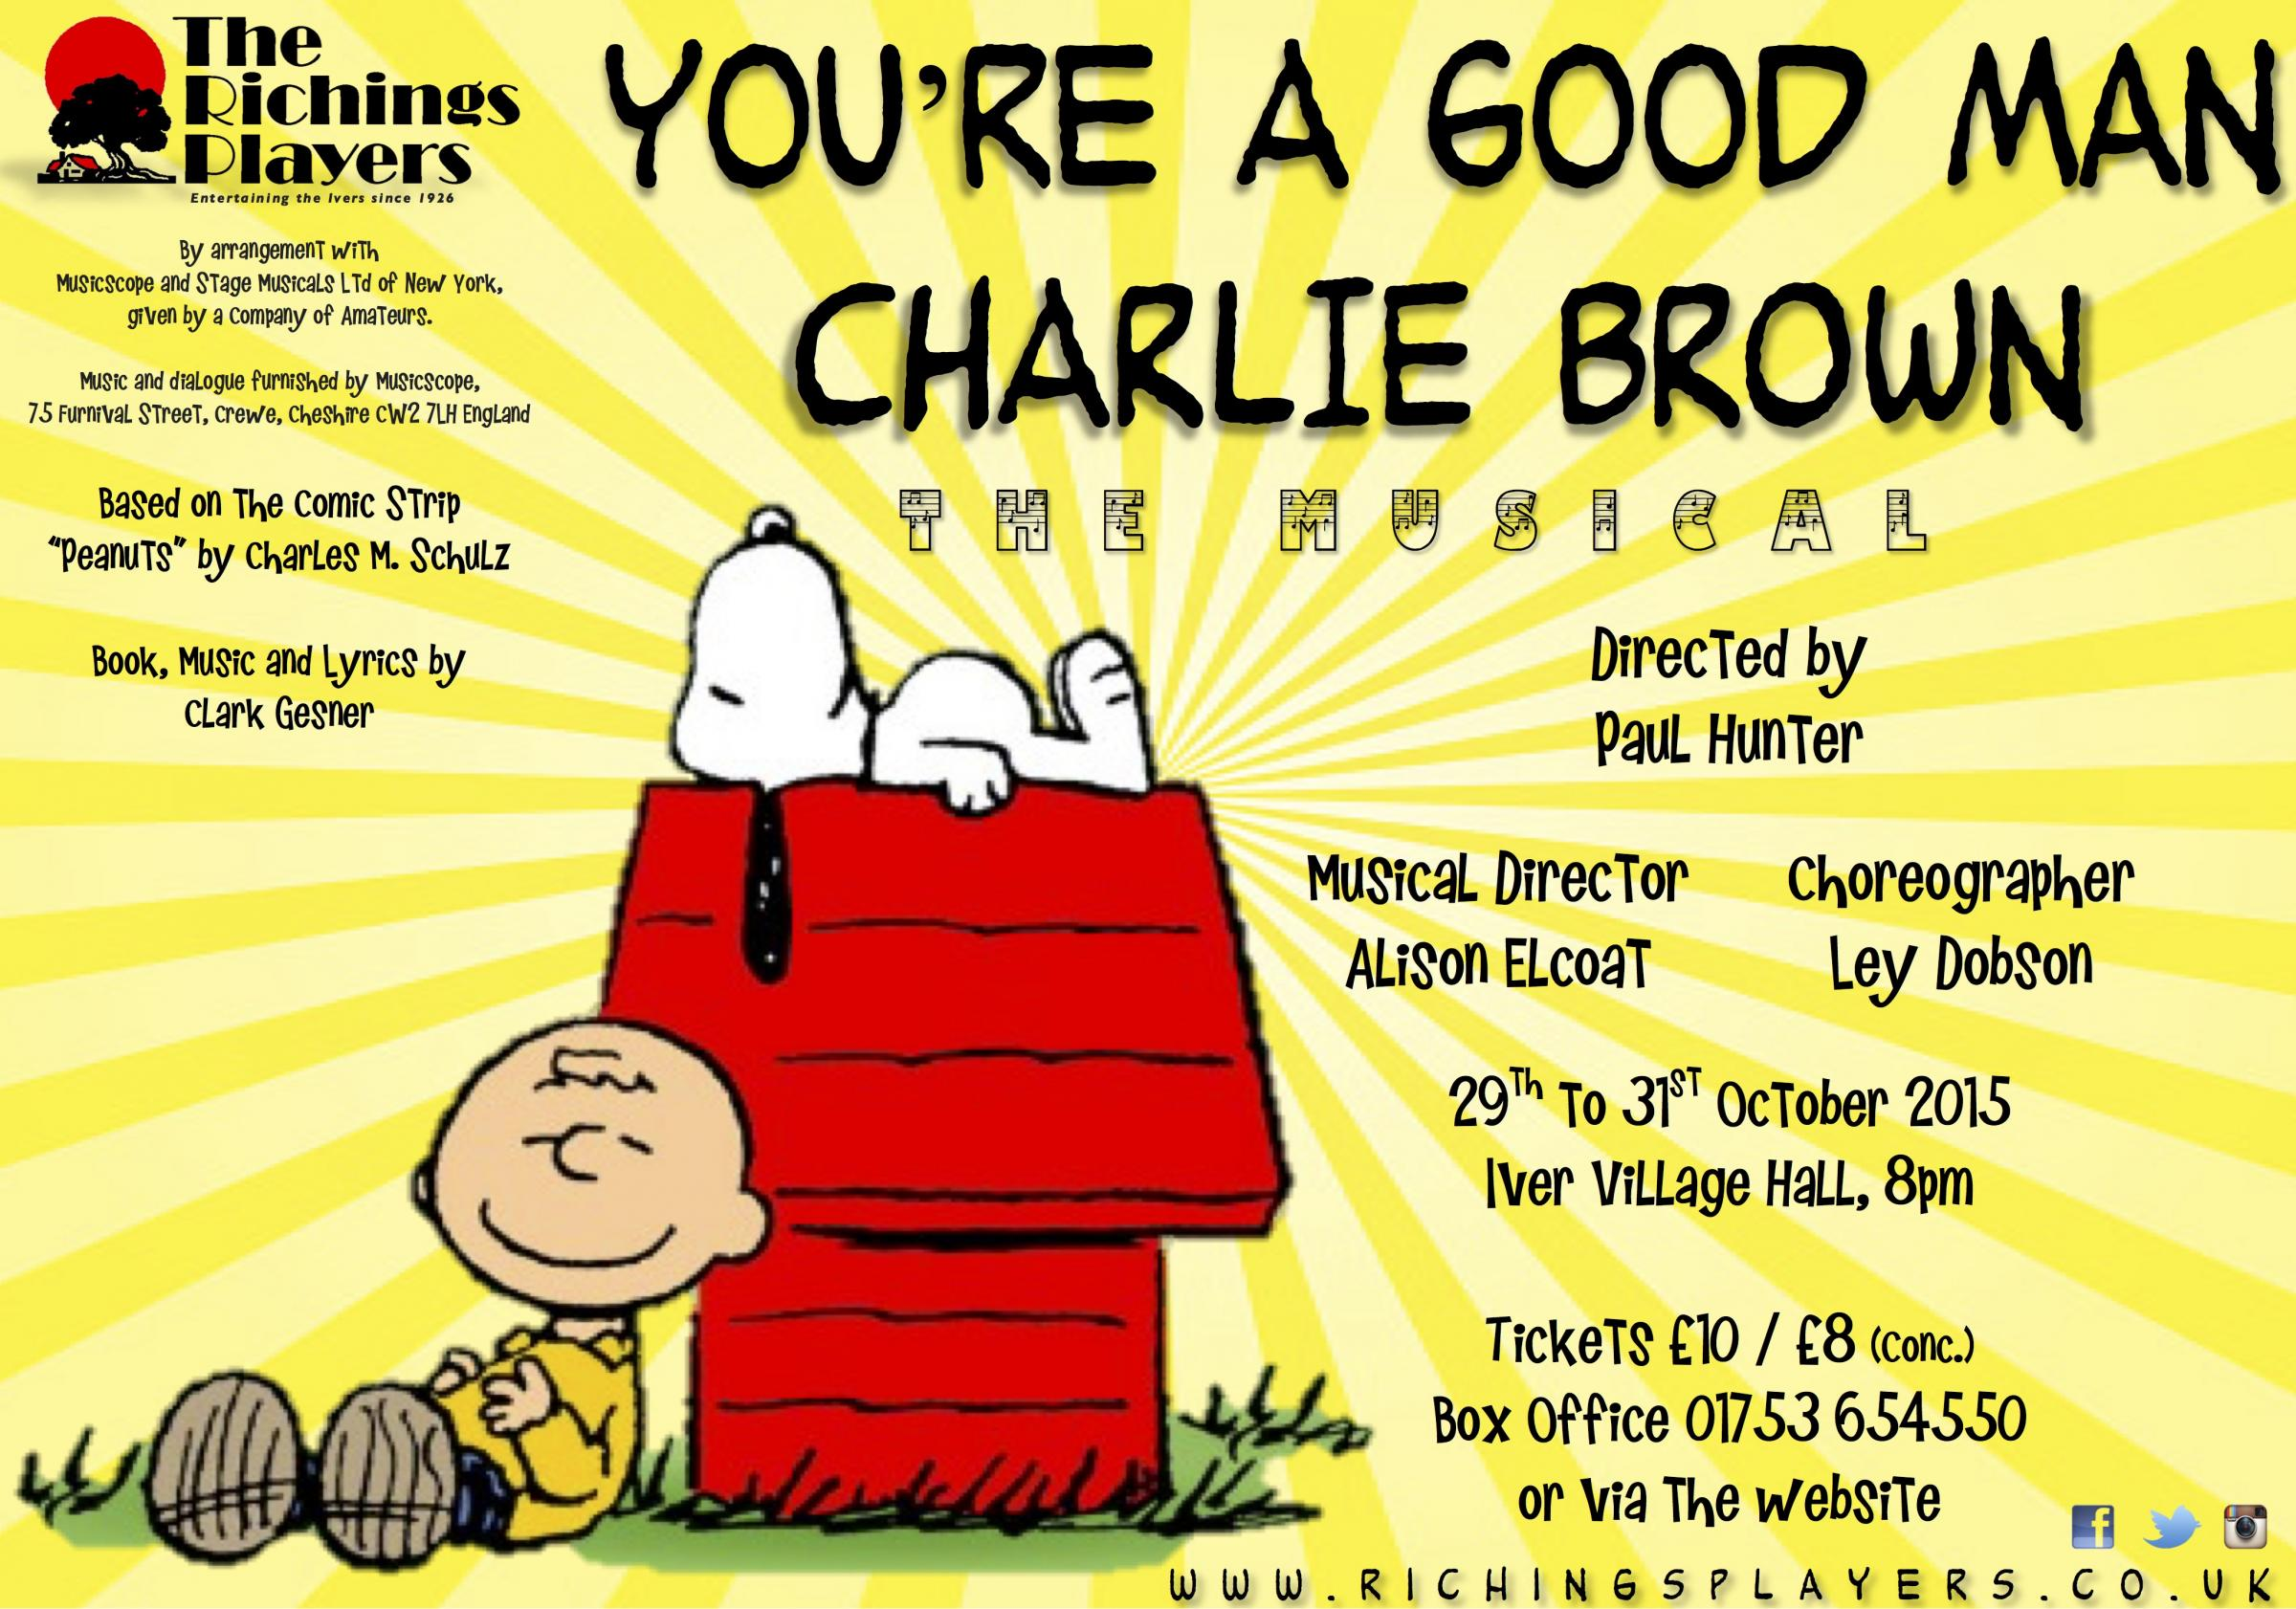 Day in the life of Charlie Brown